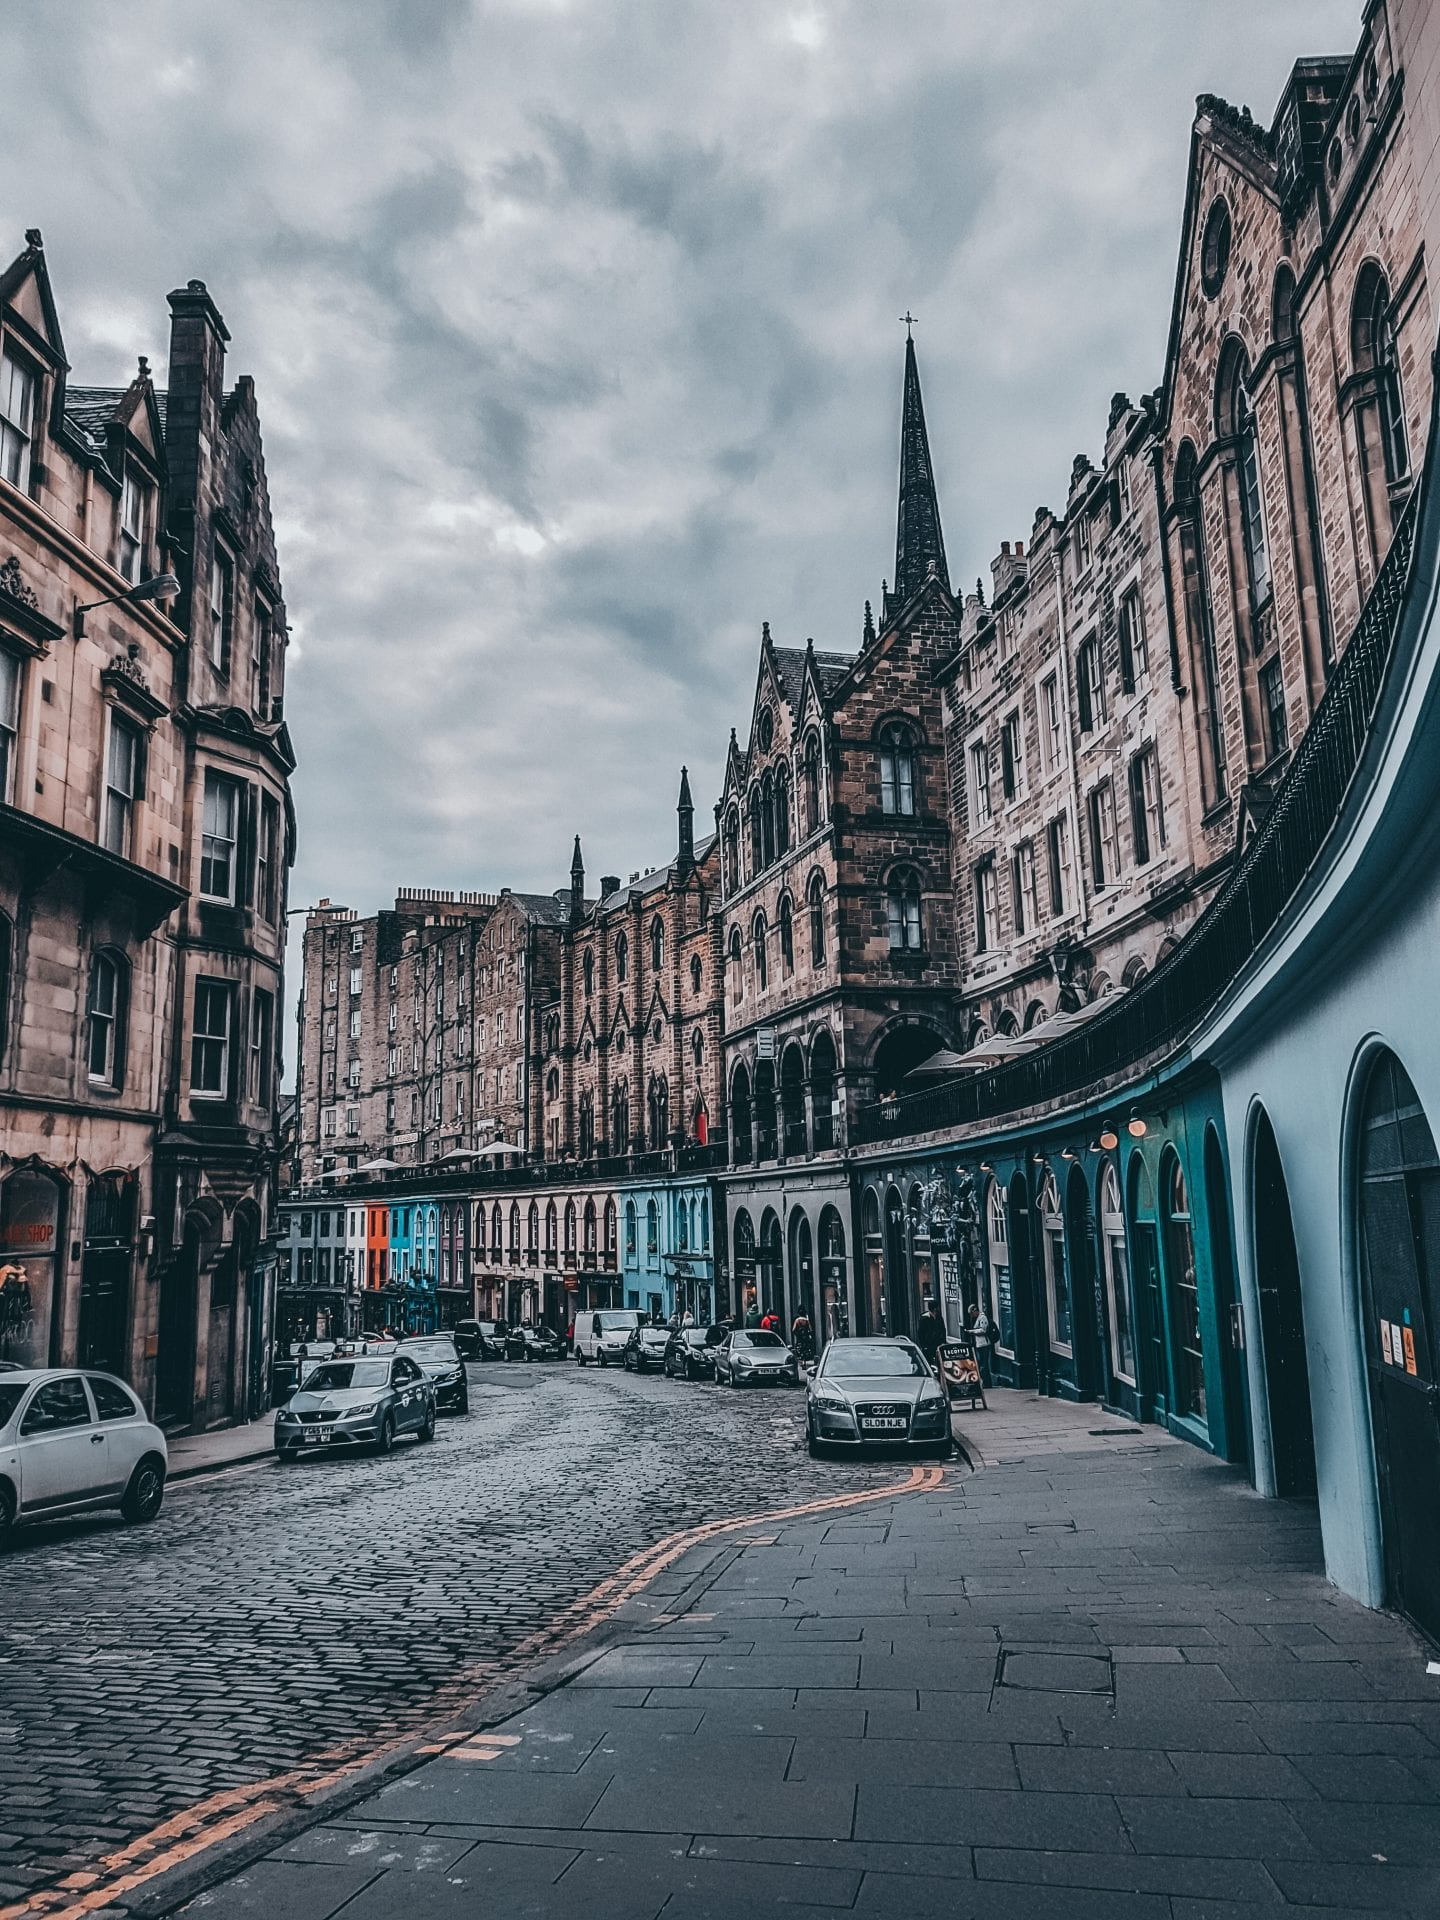 victoaria street in edinburgh